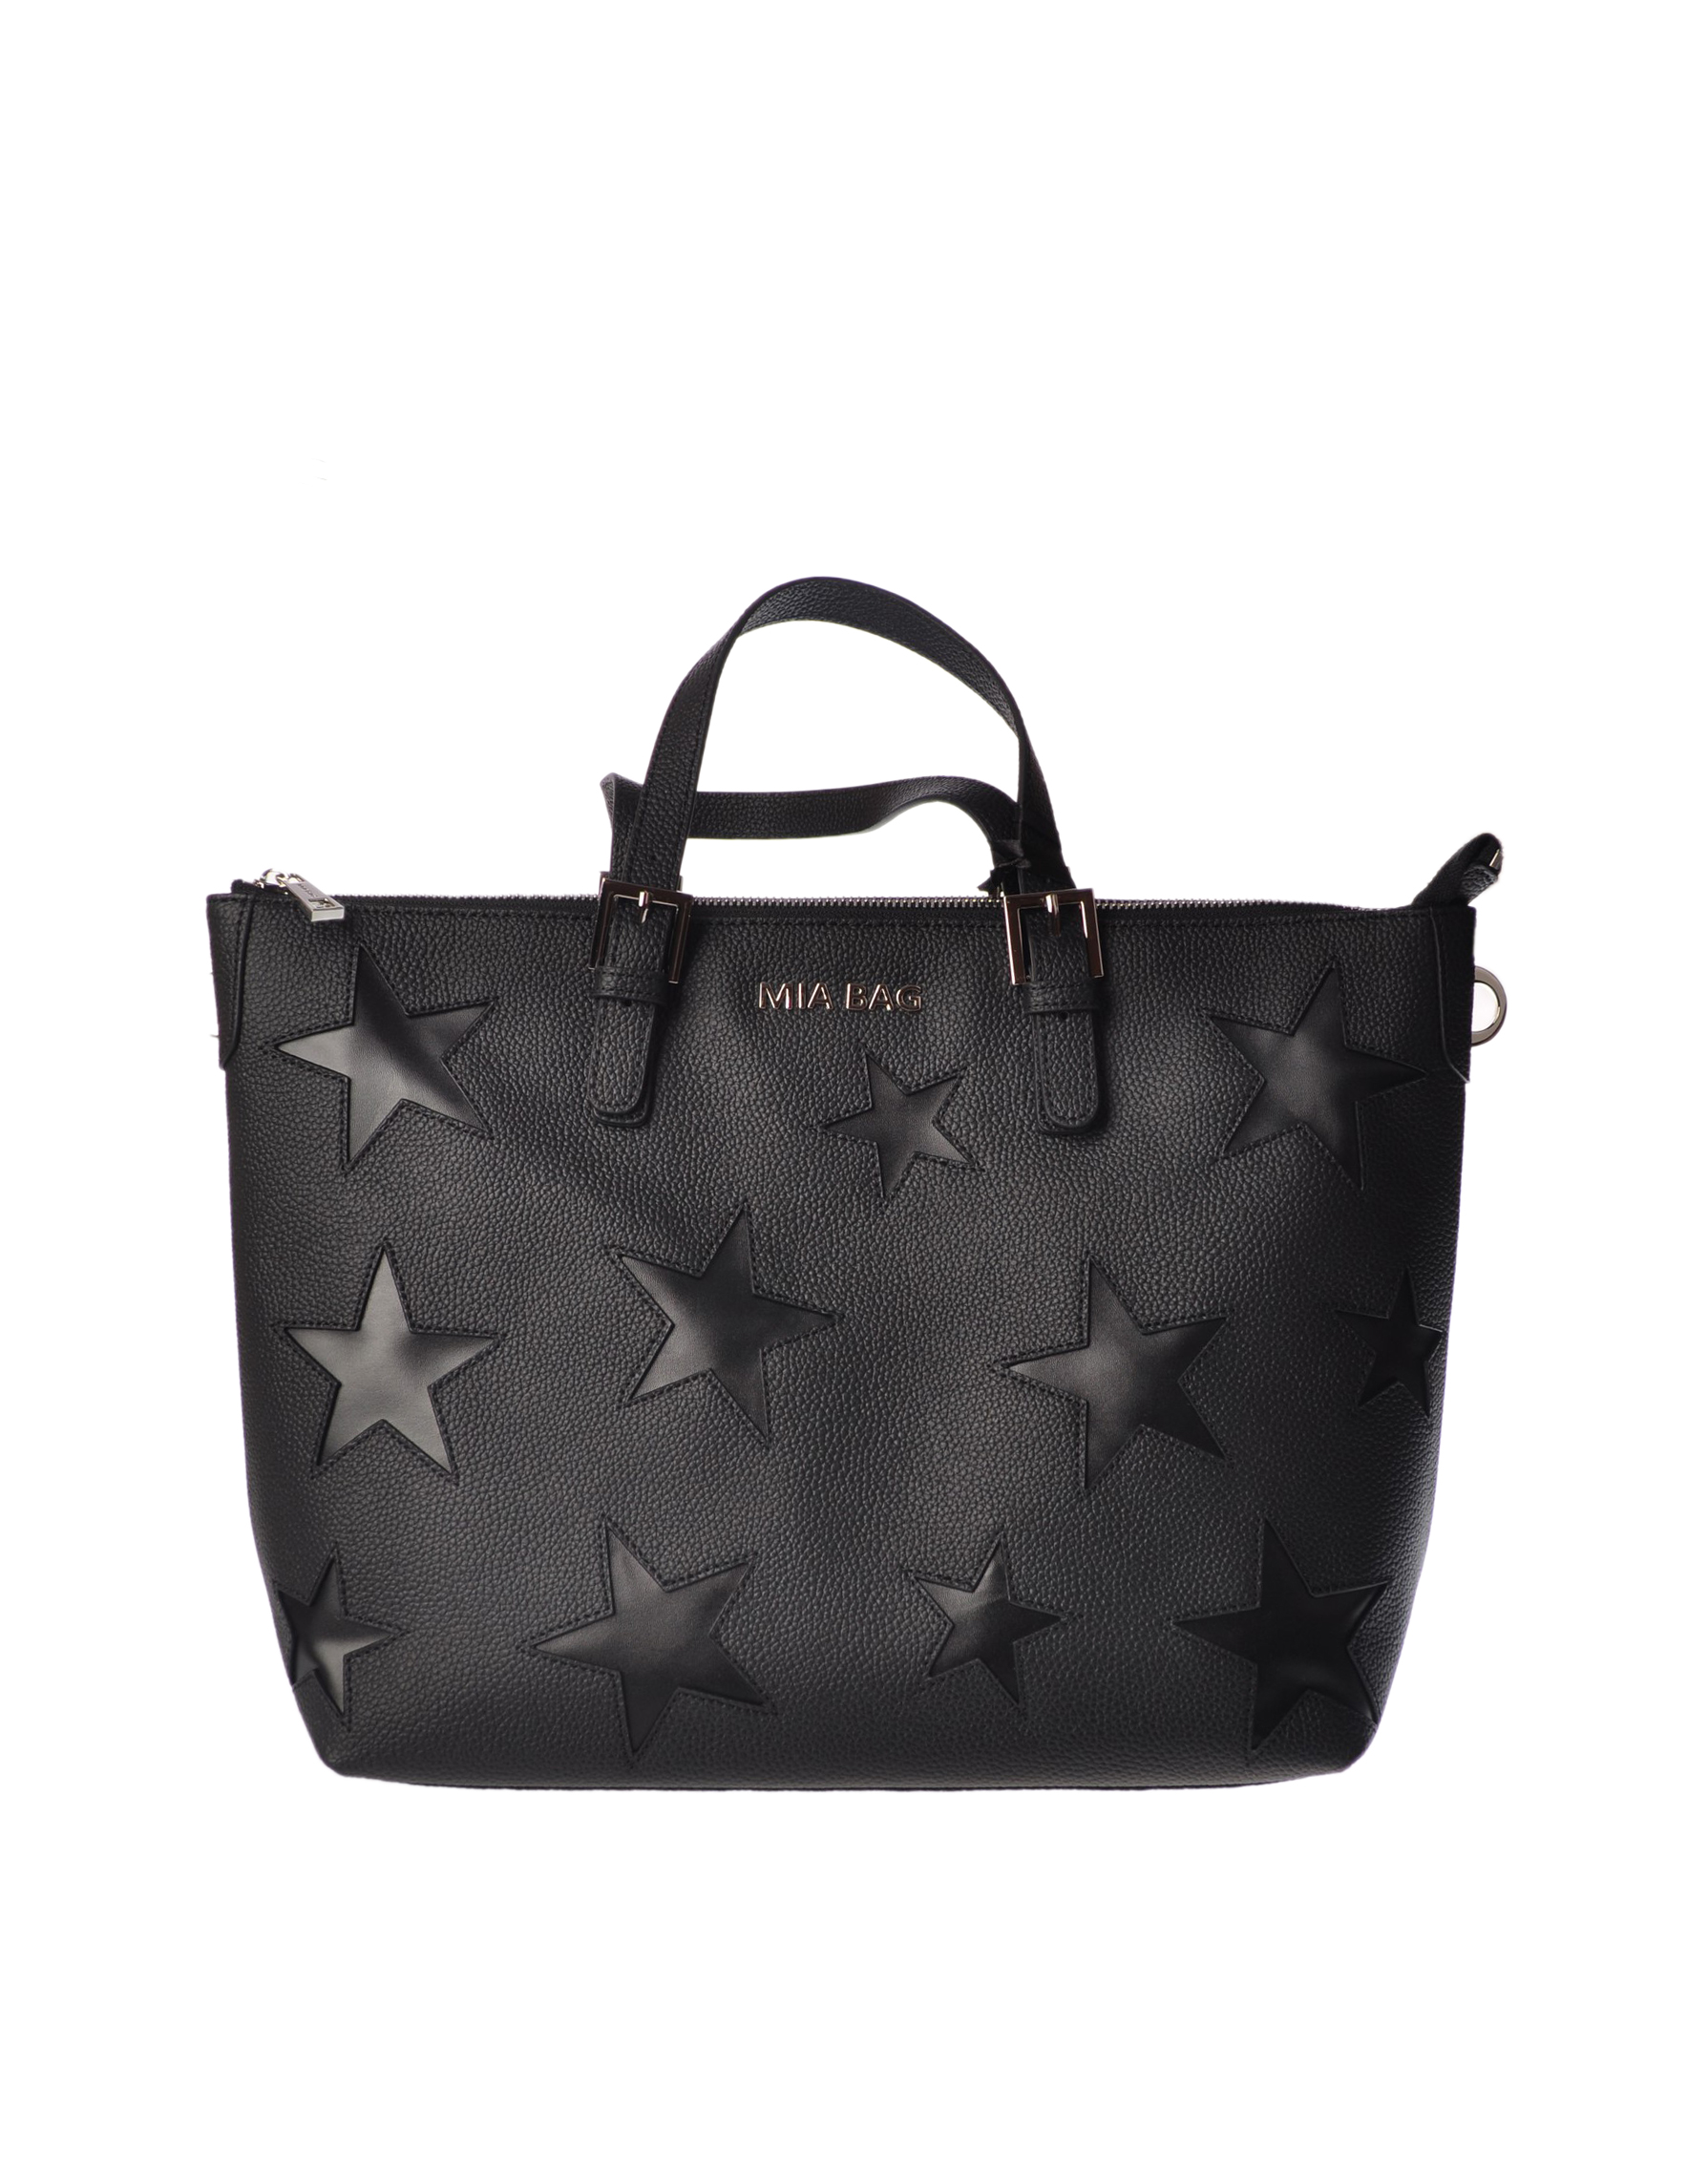 "Mia Bag ""Borsa shopping con stelle"" Borse"